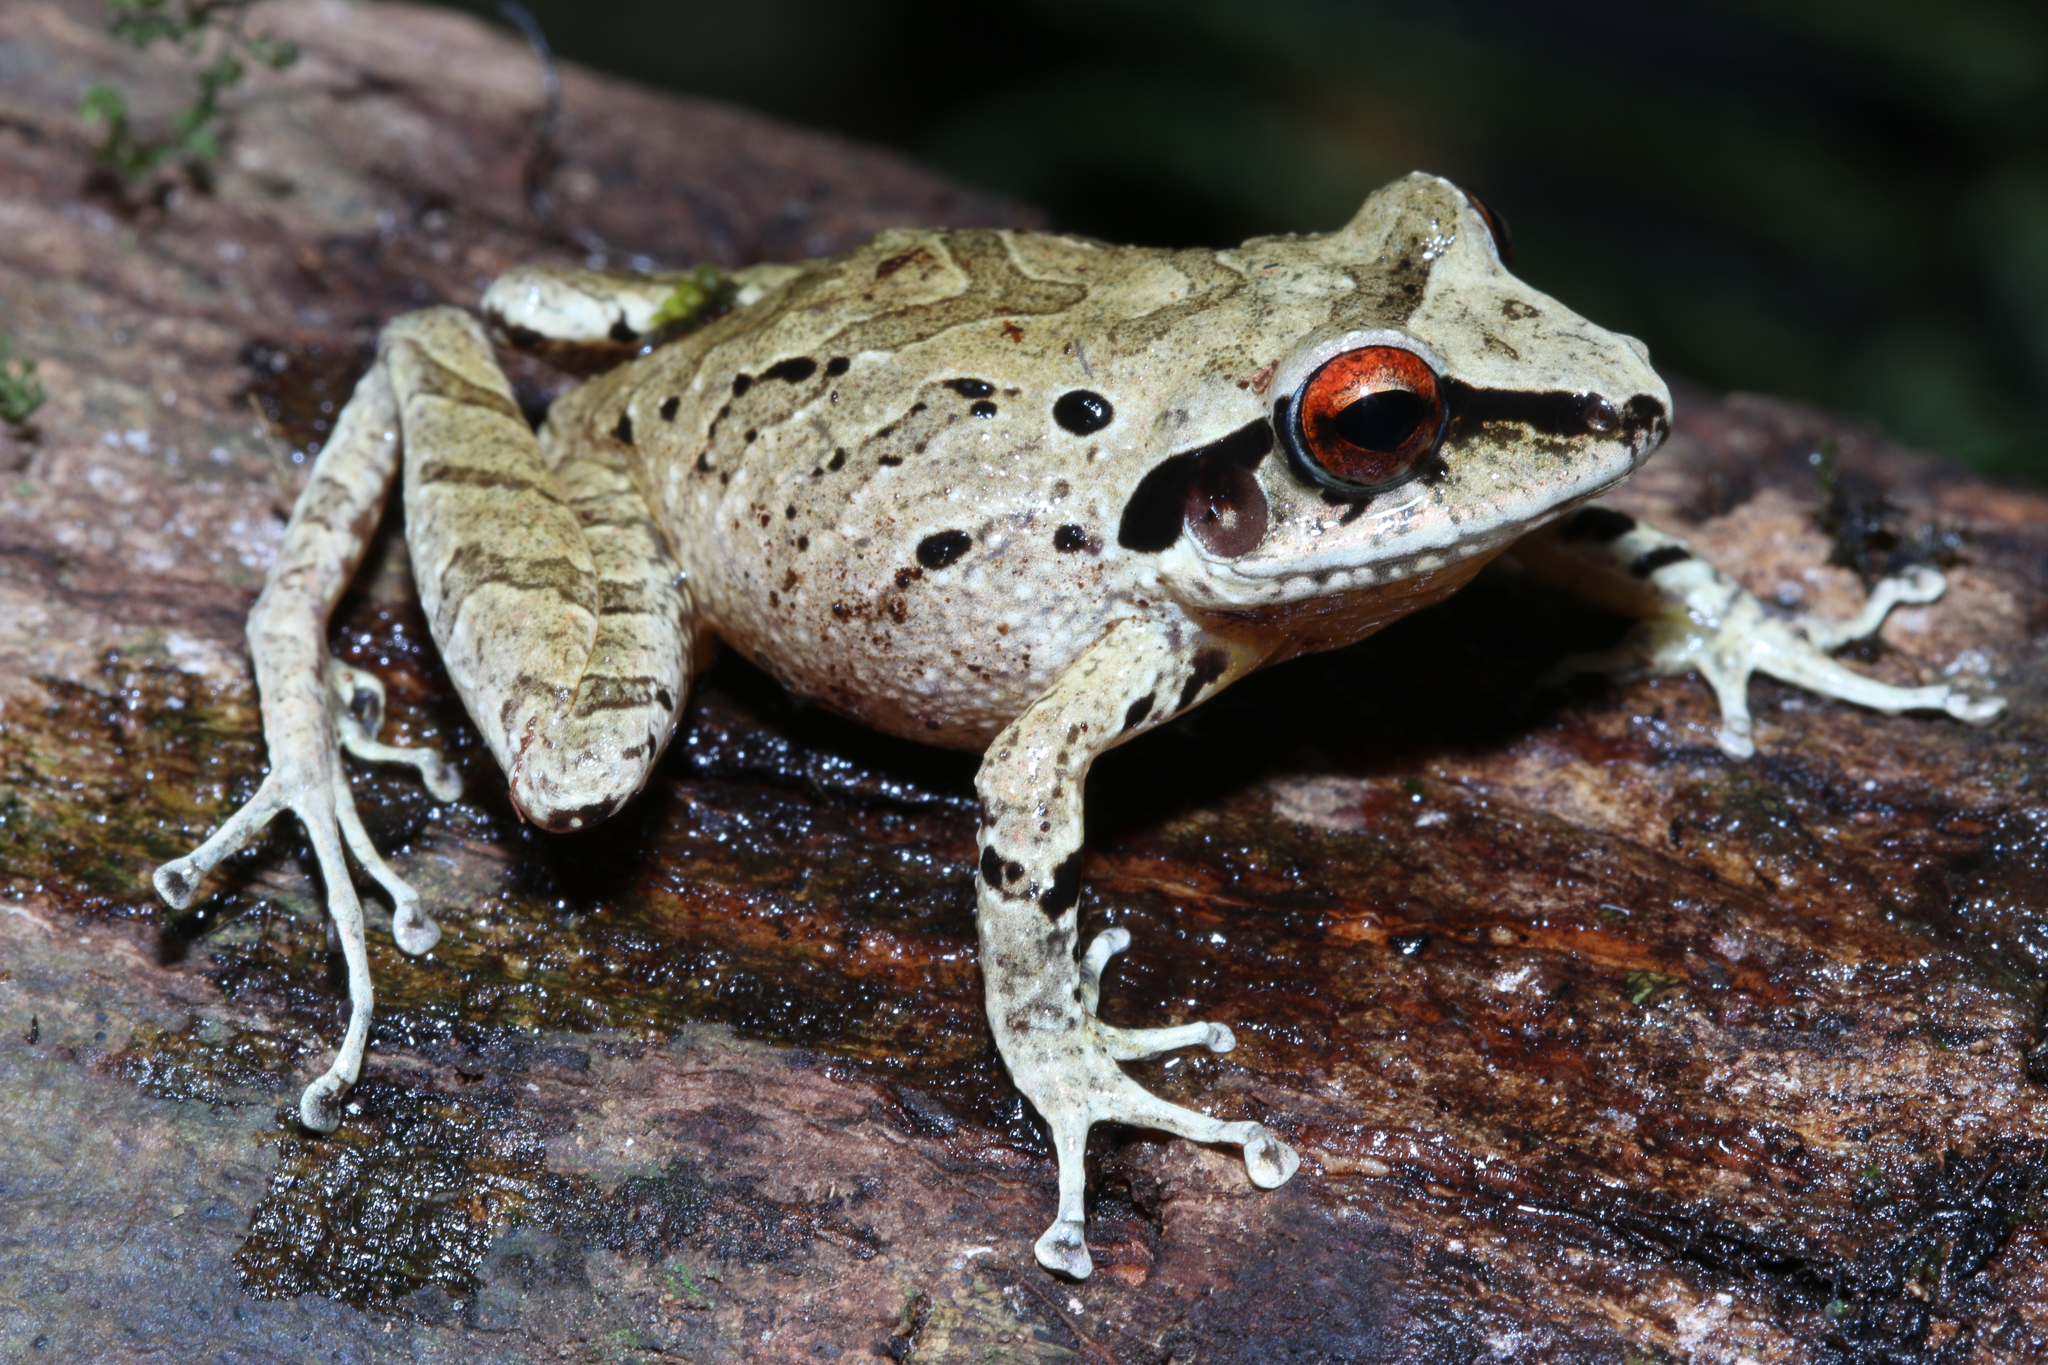 A new species of frog in the genus Pristimantis discovered near Camp 3. Photo by Giussepe Gagliardi